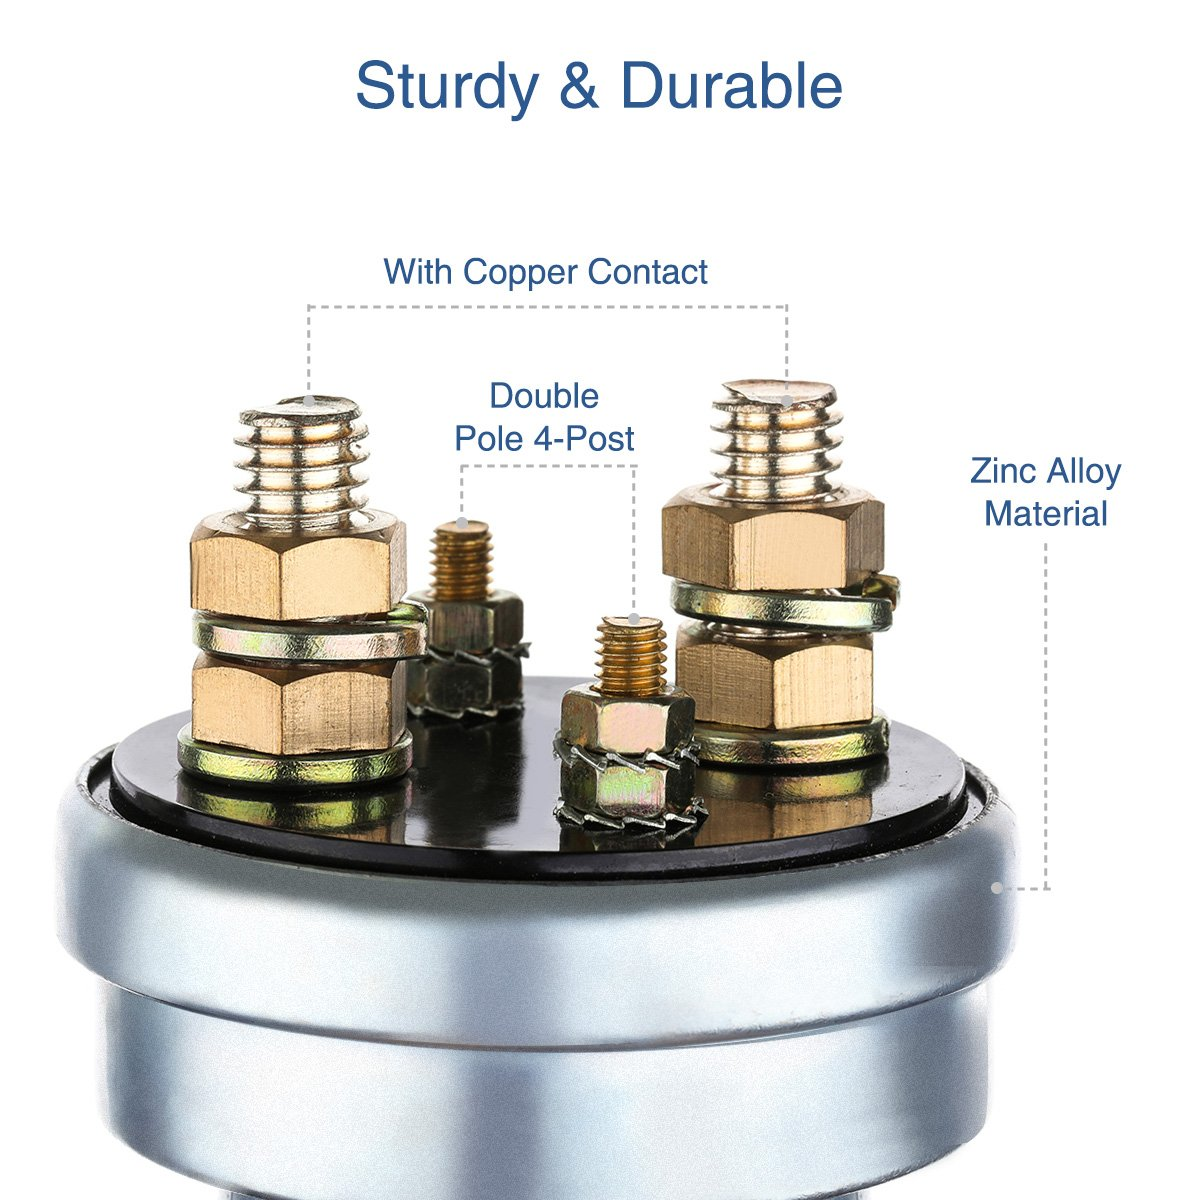 Audew High Current Battery Disconnect Switch Double 6pole Killswitch Pole Metal Body Master Quick With Copper Contacts 4 Post